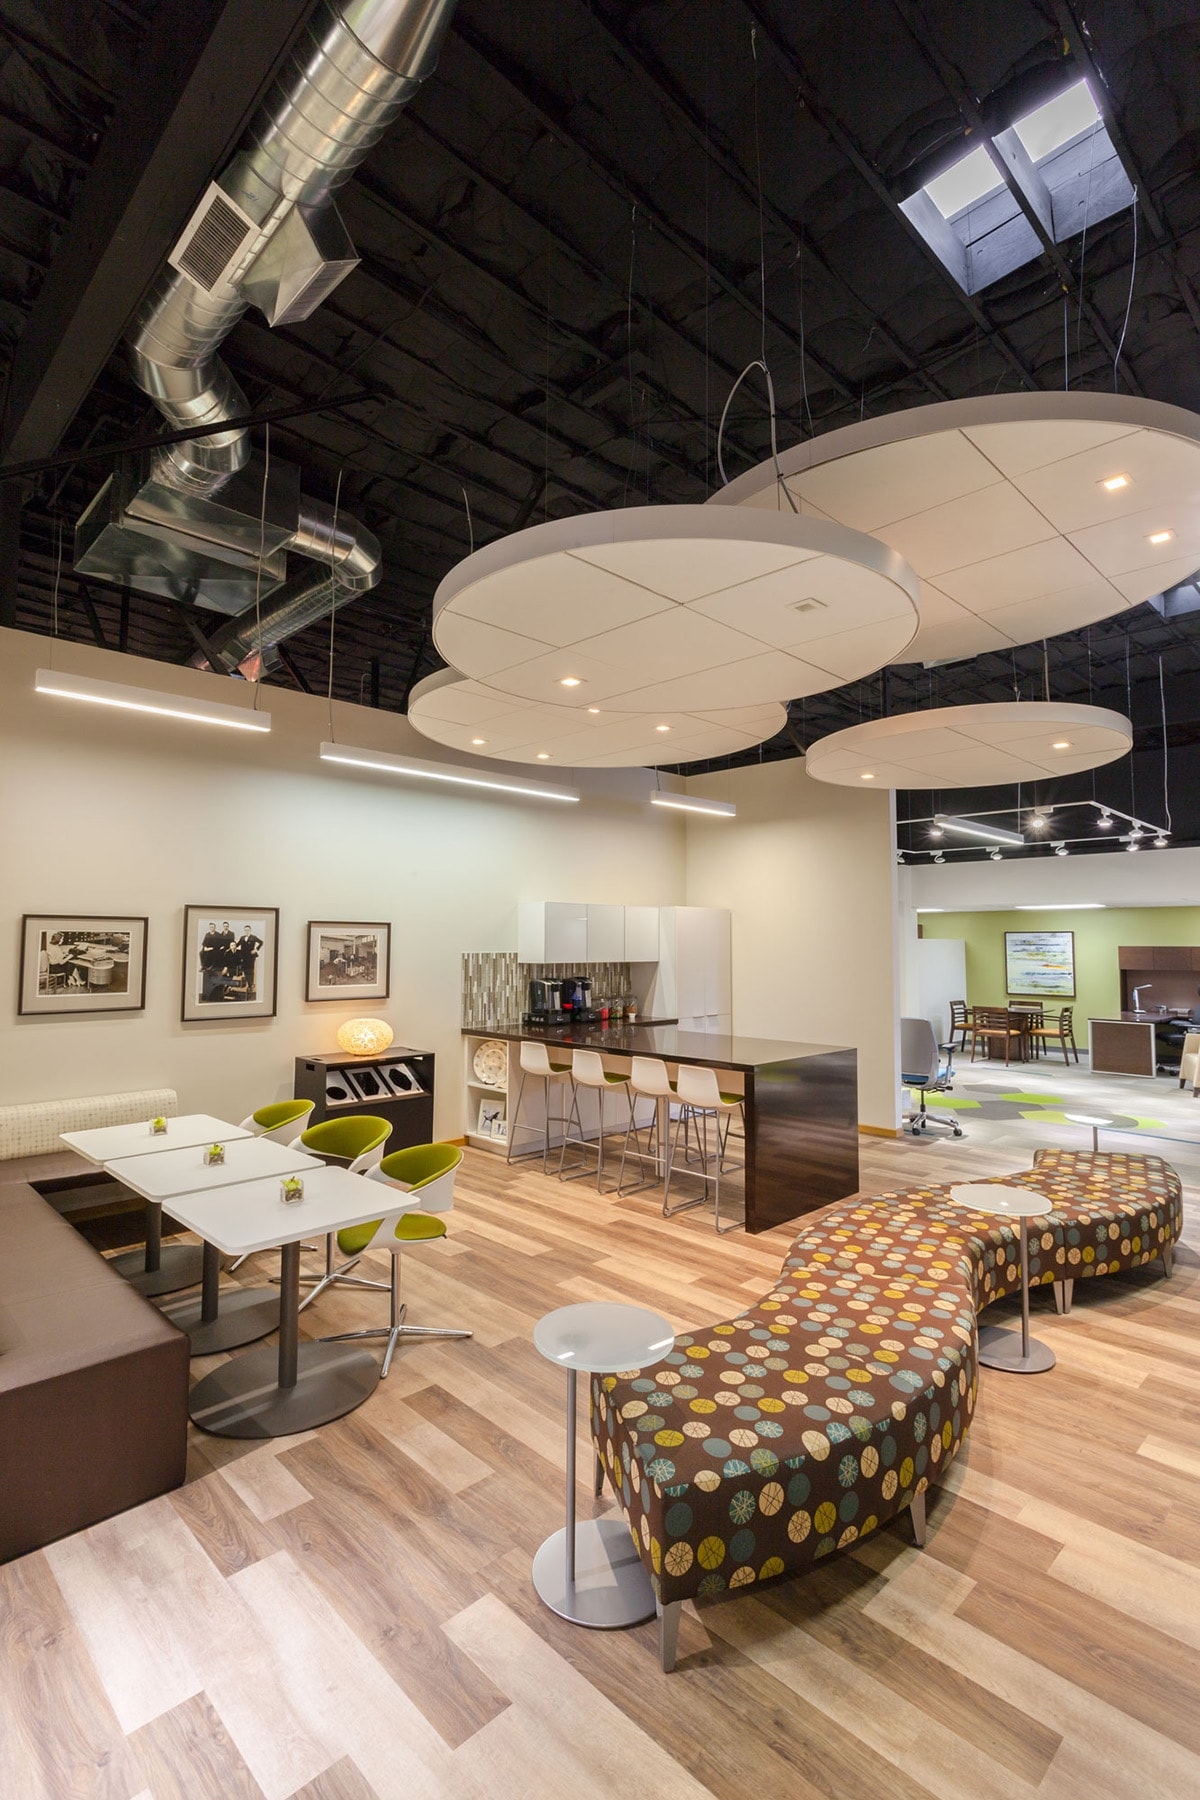 ... Of Their Corporate Office Into A Class A Showroom For Office  Furnishings, Carpet And Acoustic Ceilings. As Part Of The Project, Big D  Also Added An ...